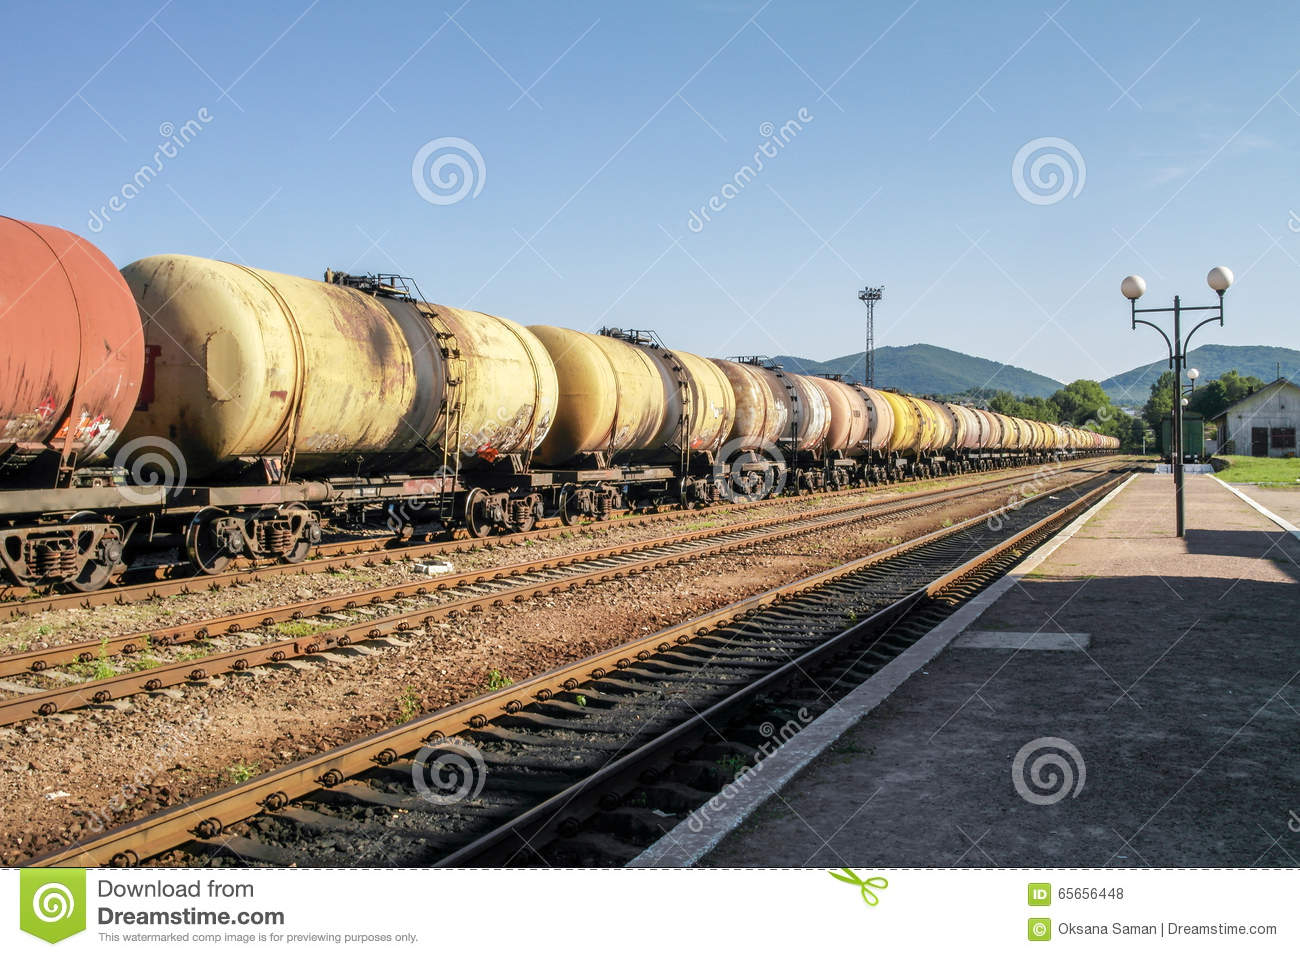 Freight trains.Railroad train of tanker cars transporting crude oil on the tracks